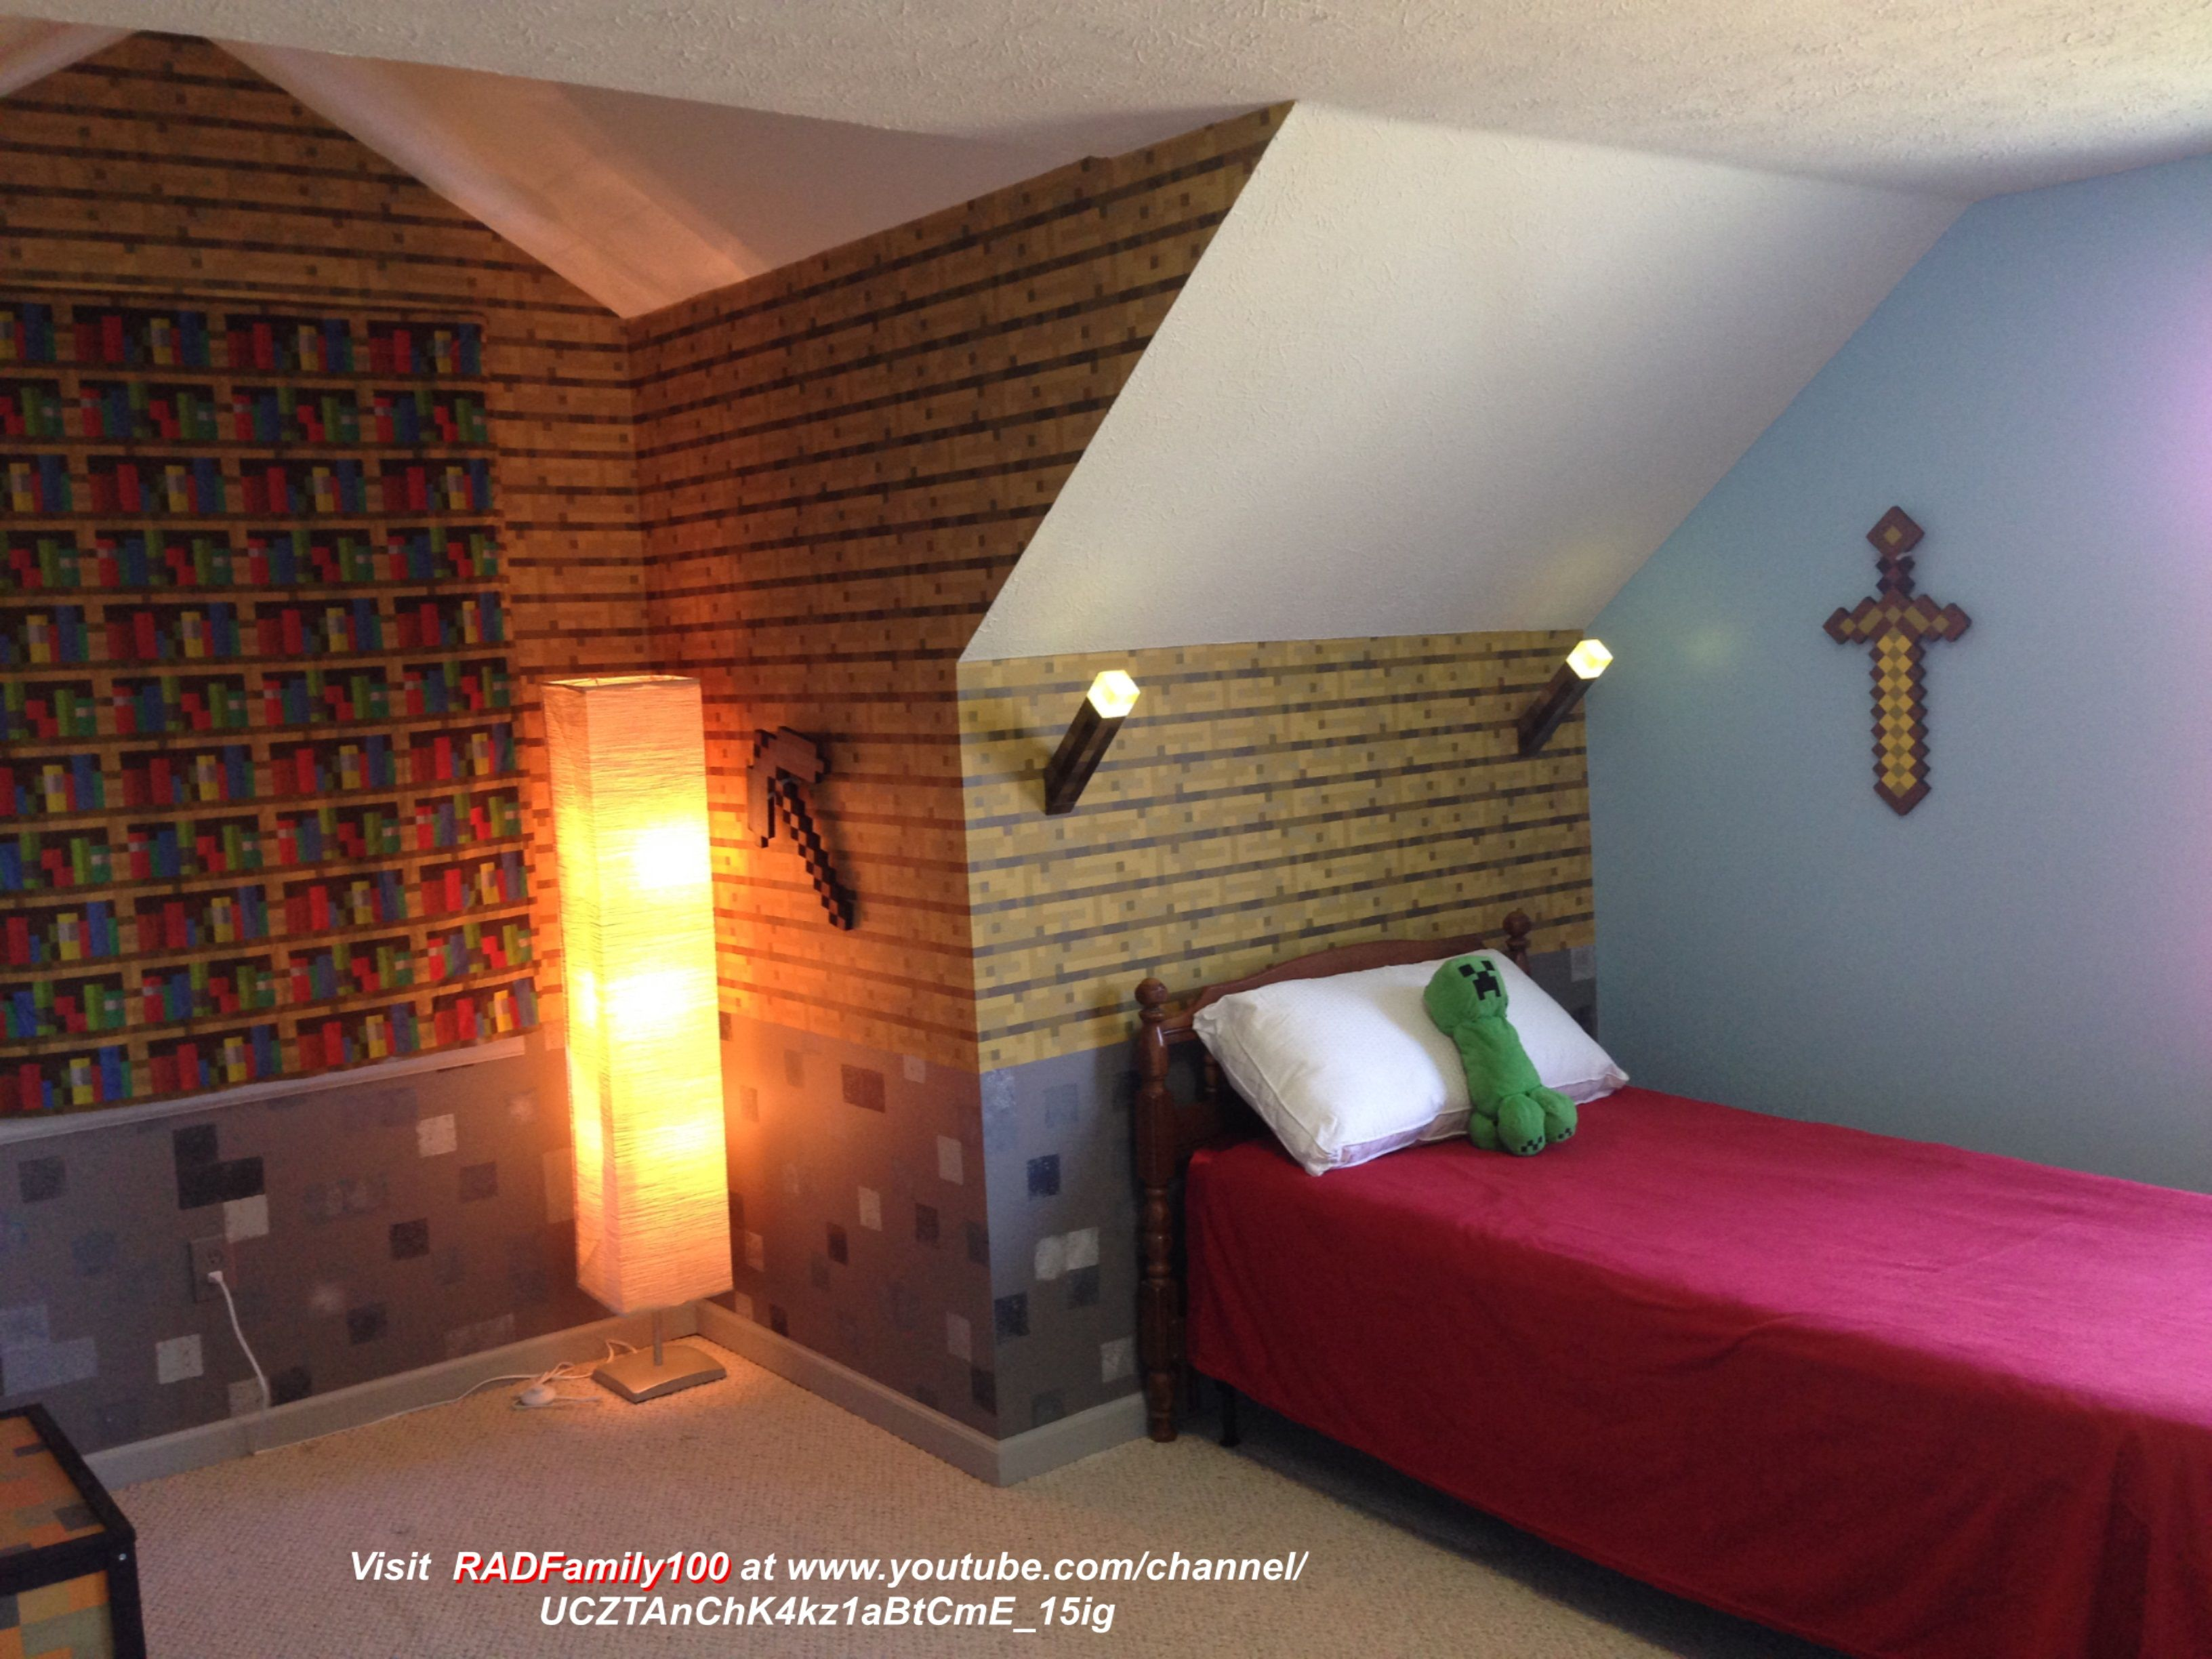 Minecraft Themed Bedroom I Made The Bed Area To Look Like Inside